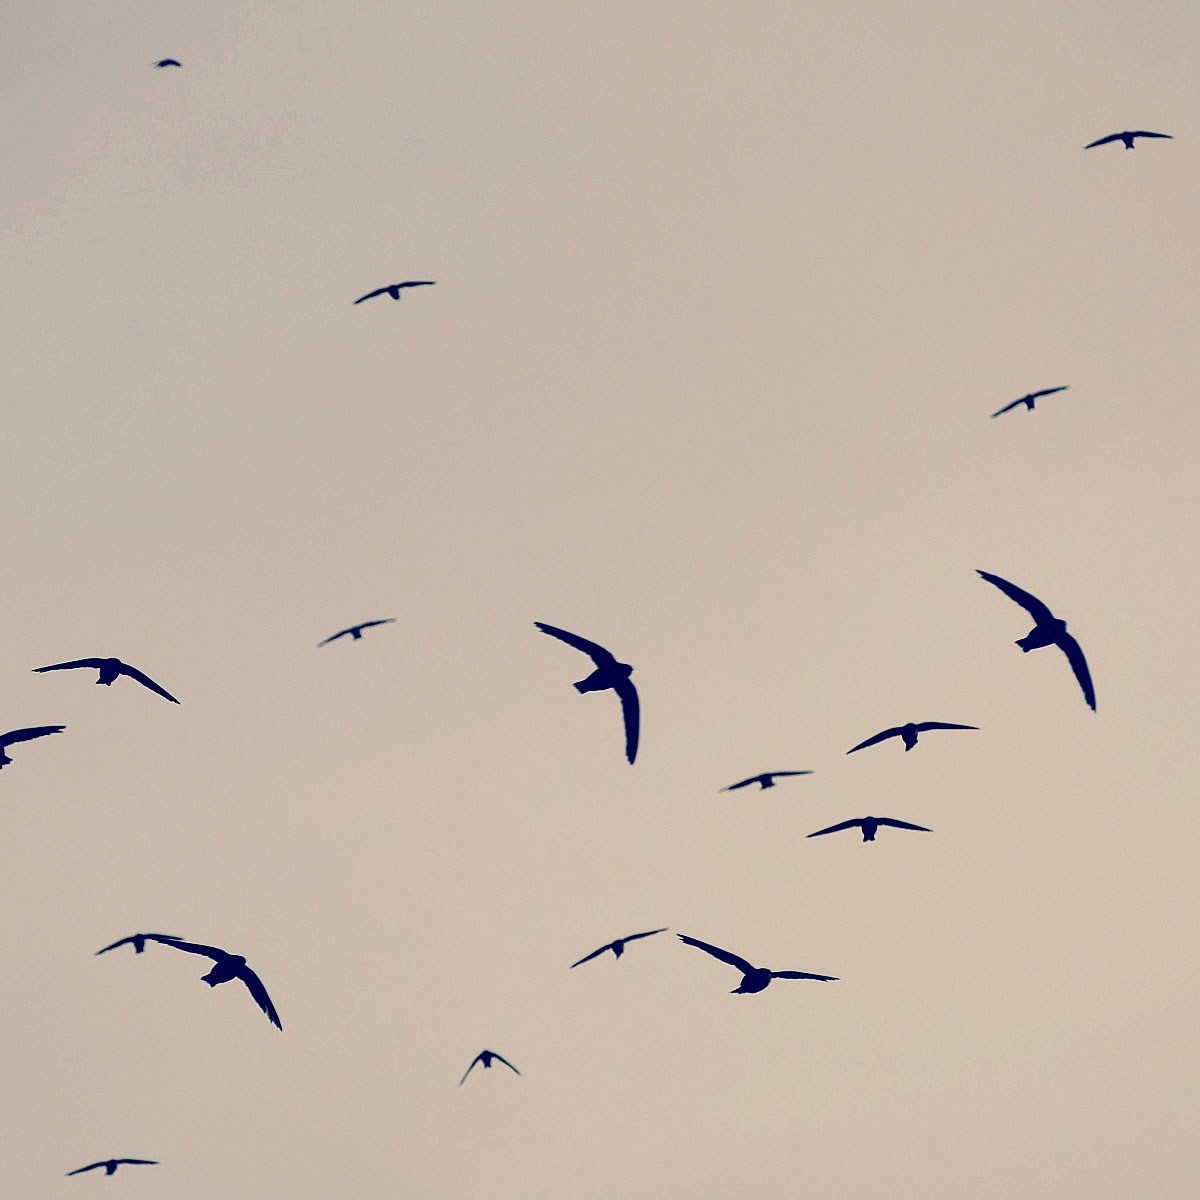 Biscutate Swifts swooping toward their cliffside roost at dusk. Photo by Noah Strycker